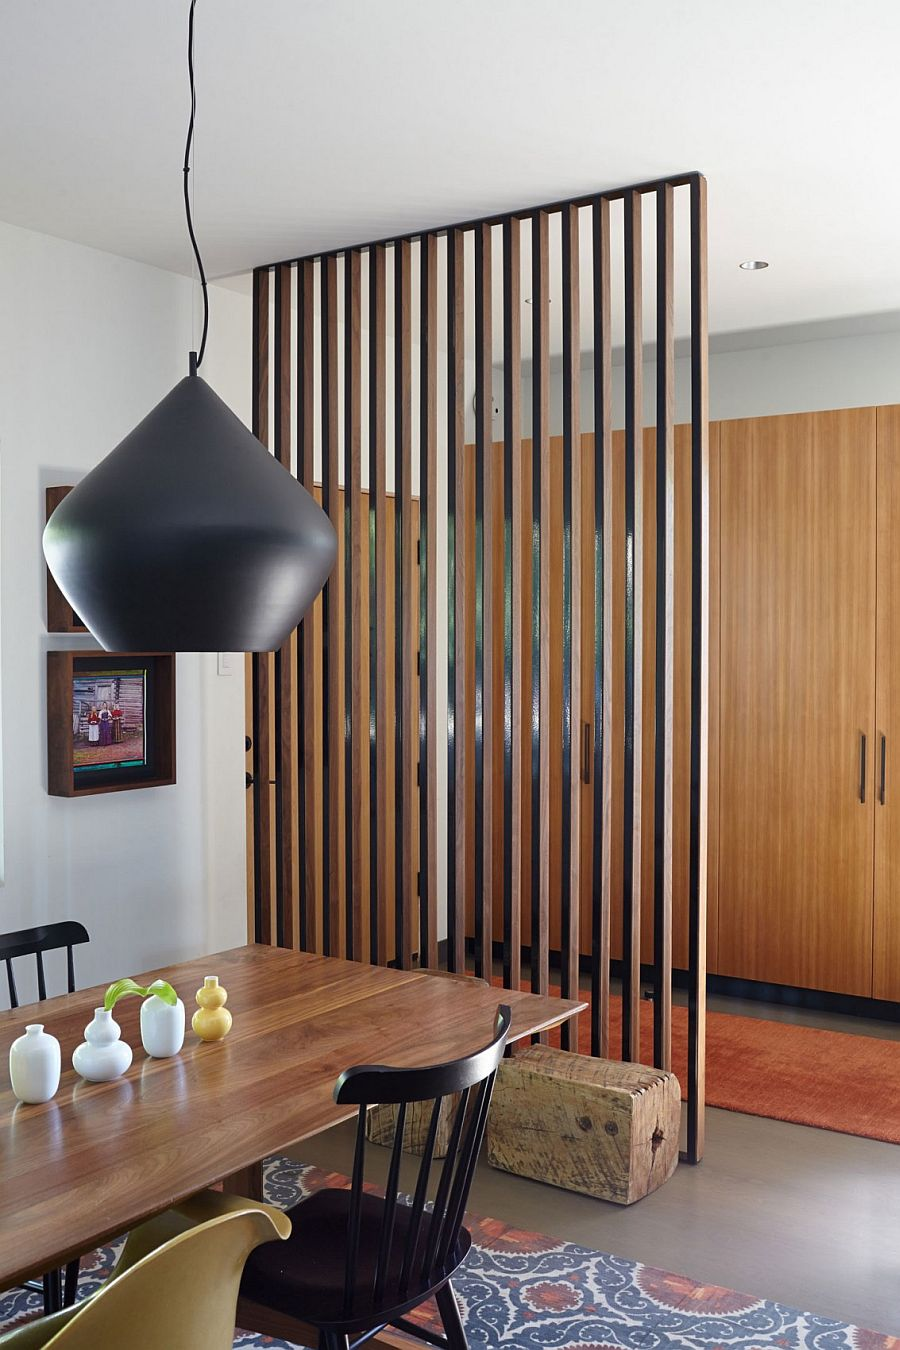 Wooden slats delineate the dining space from the living room